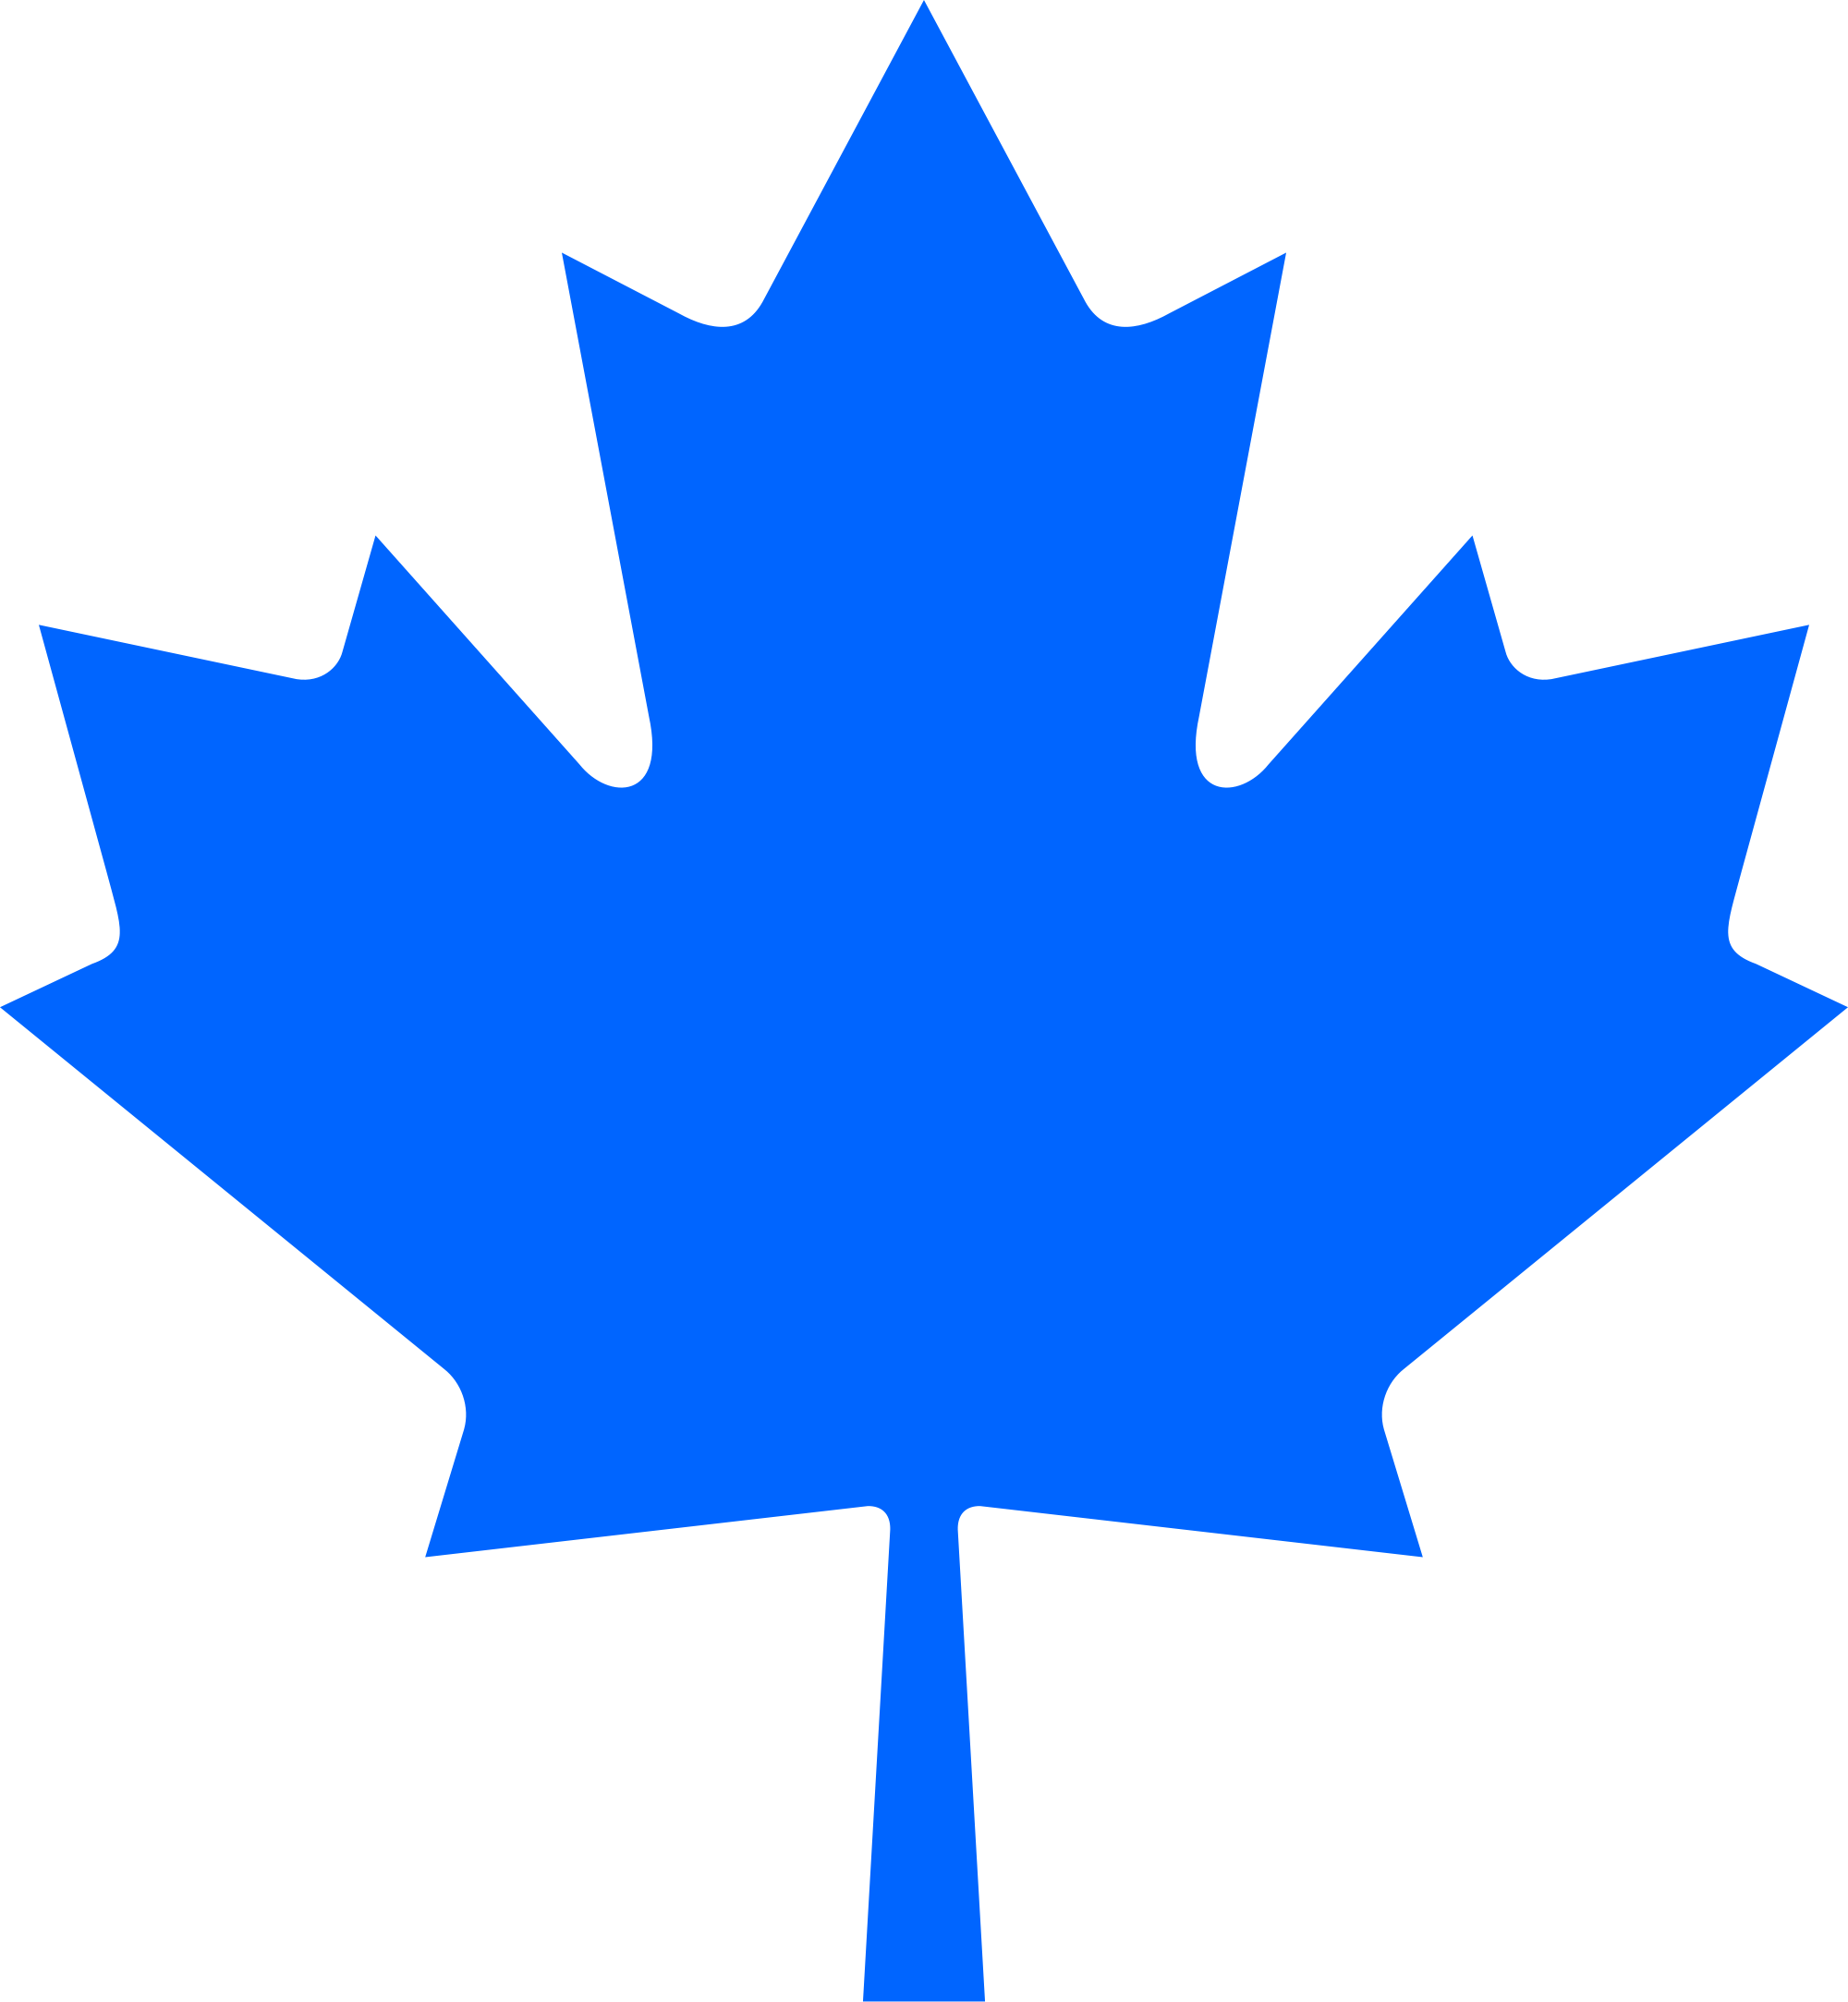 Maple Leaf svg #18, Download drawings